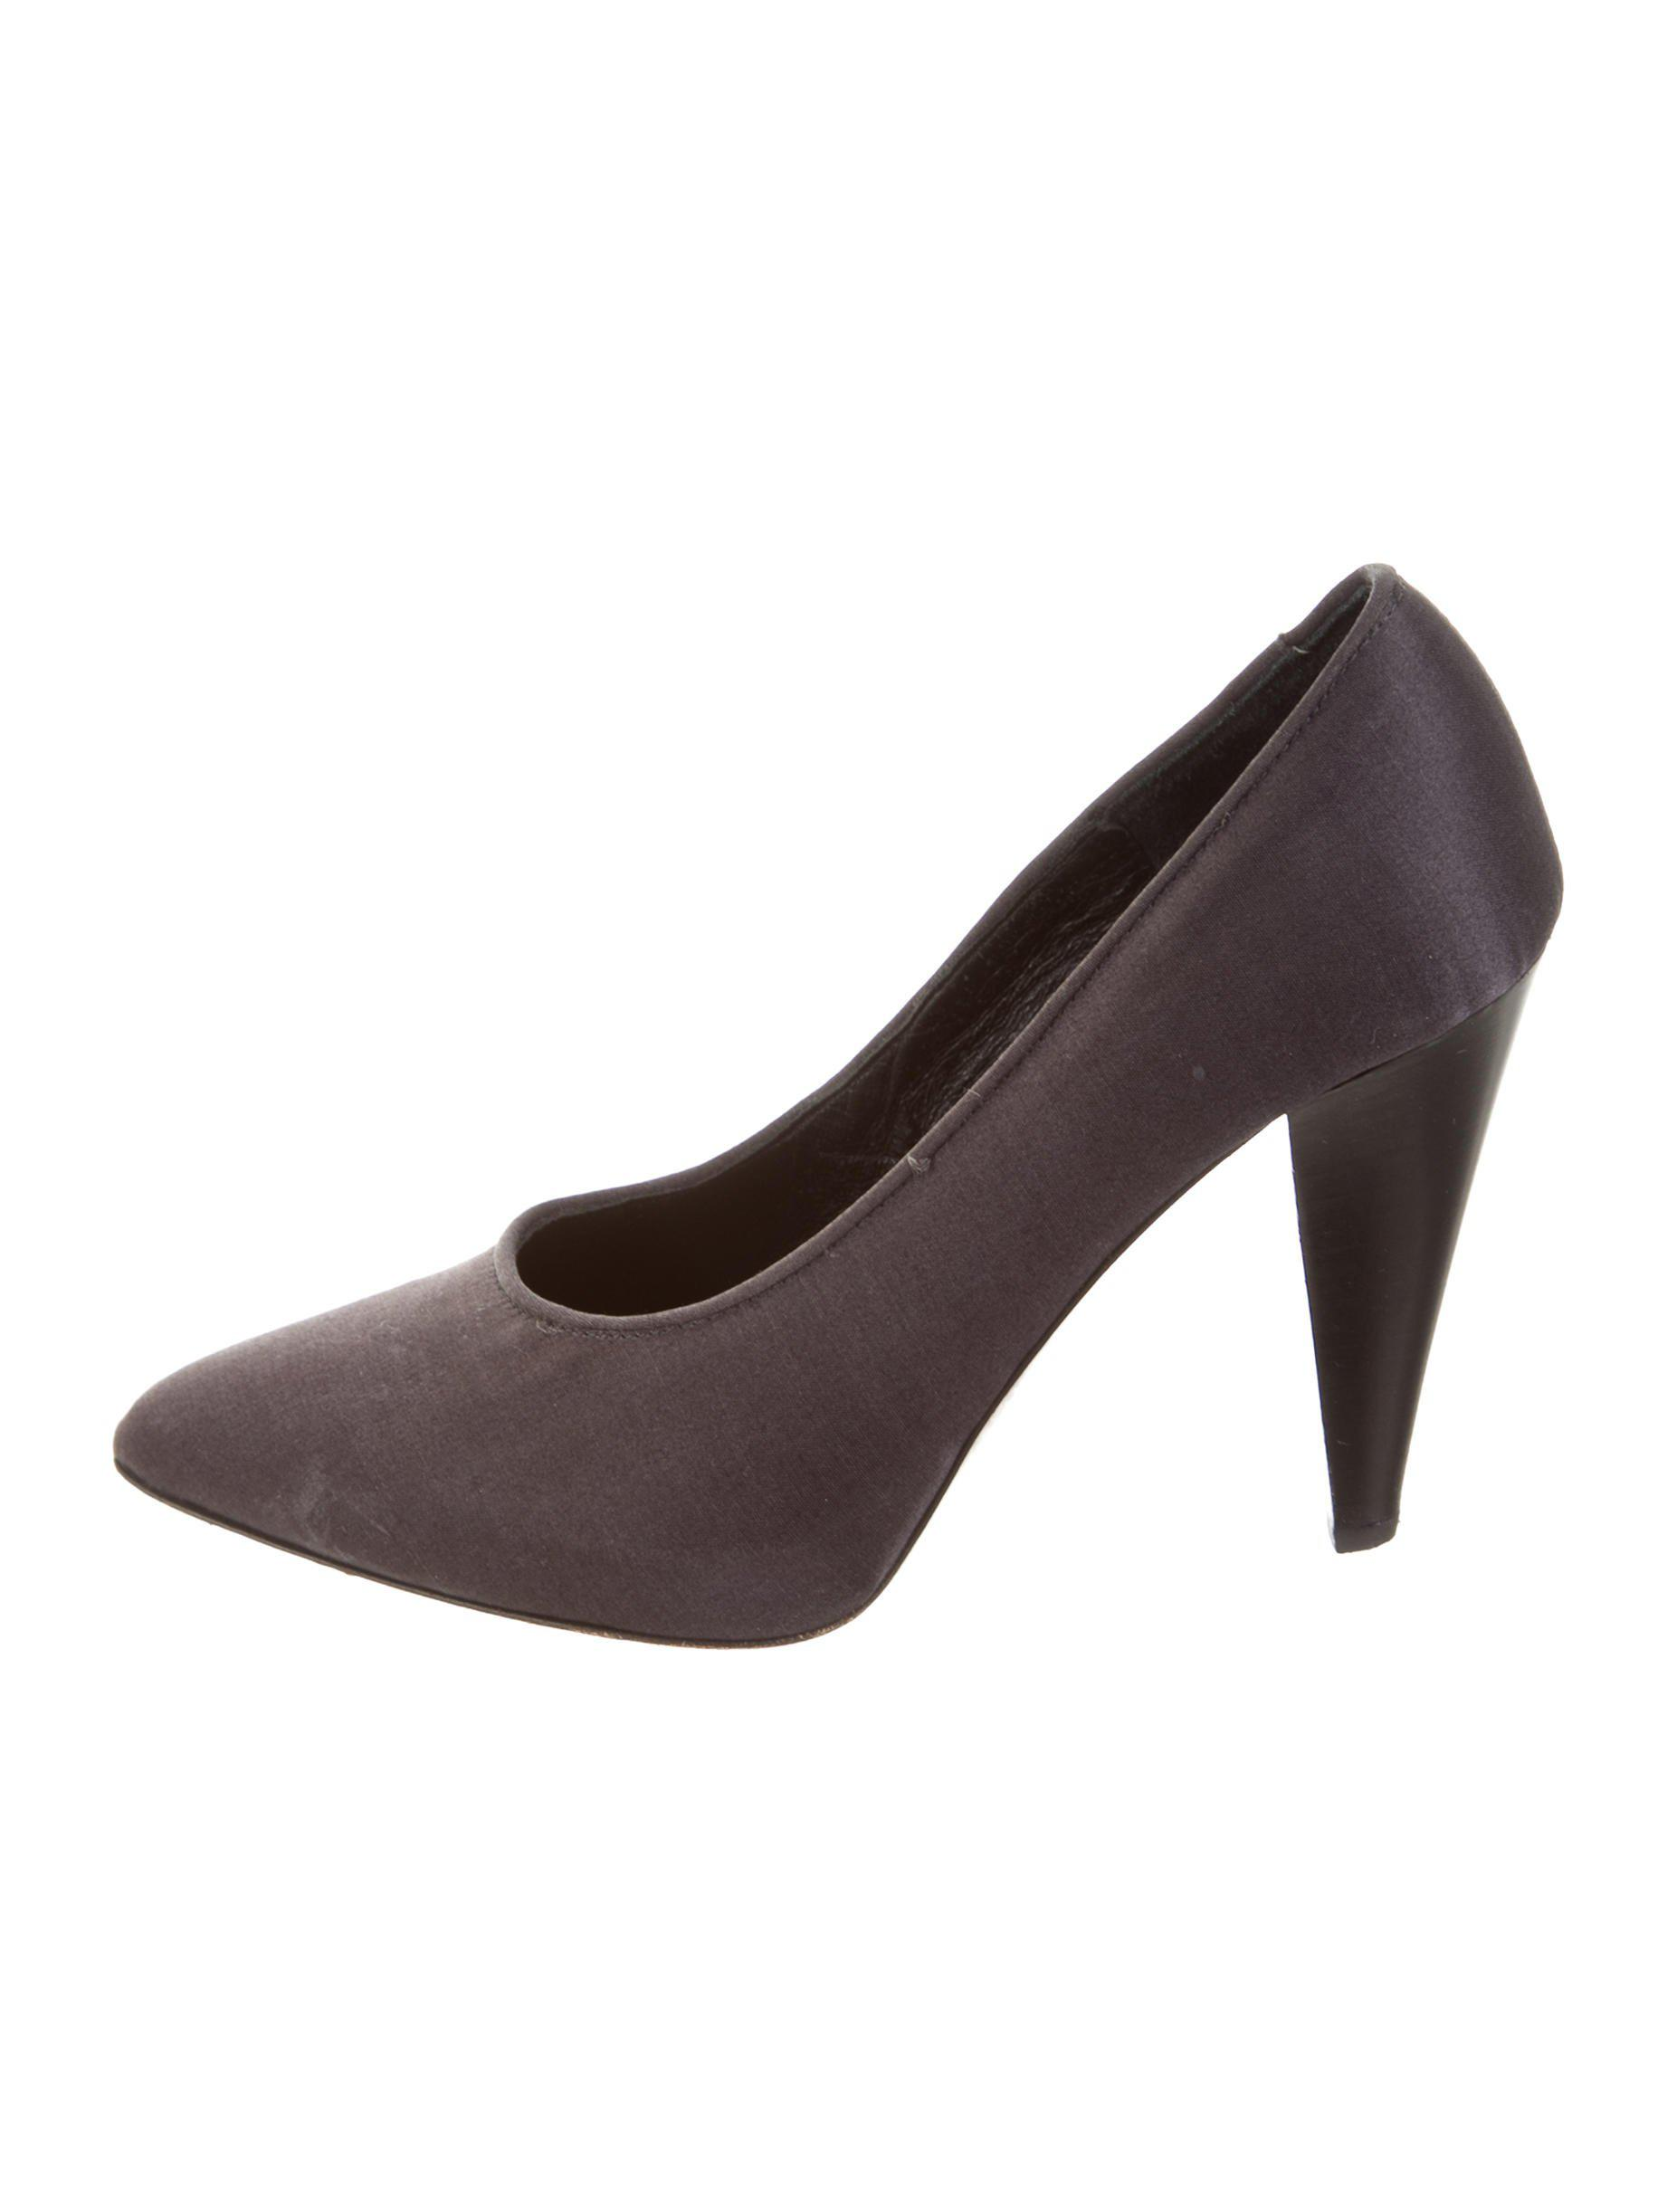 Proenza Schouler Satin Pointed-Toe Pumps wide range of free shipping 100% guaranteed online sale online ydOqT81R